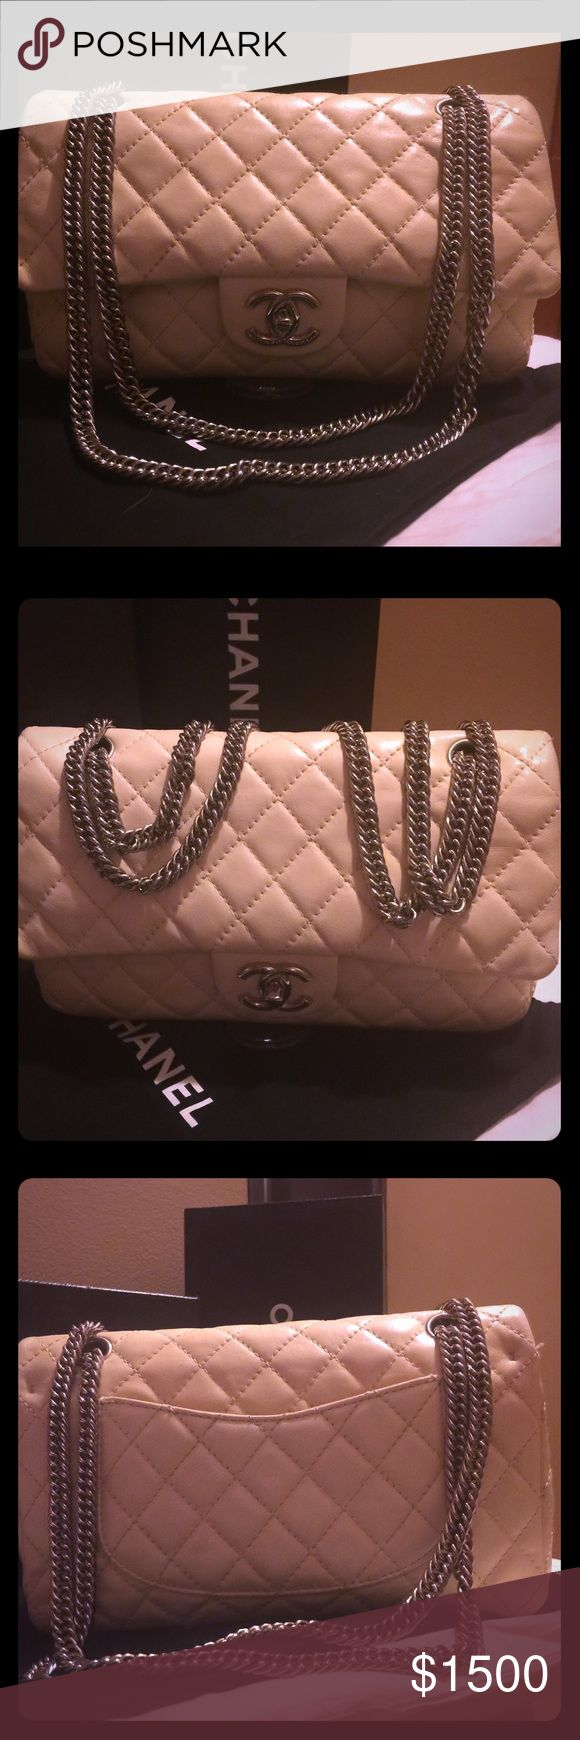 Additional Pictures of Chanel bag on SALE‼️‼️‼️‼️ Additional pictures of Chanel bag. For some reason it didn't allow me to add pictures to the original listing. Please purchase here. Please do not send offers. Price is firm and final. CHANEL Bags Shoulder Bags